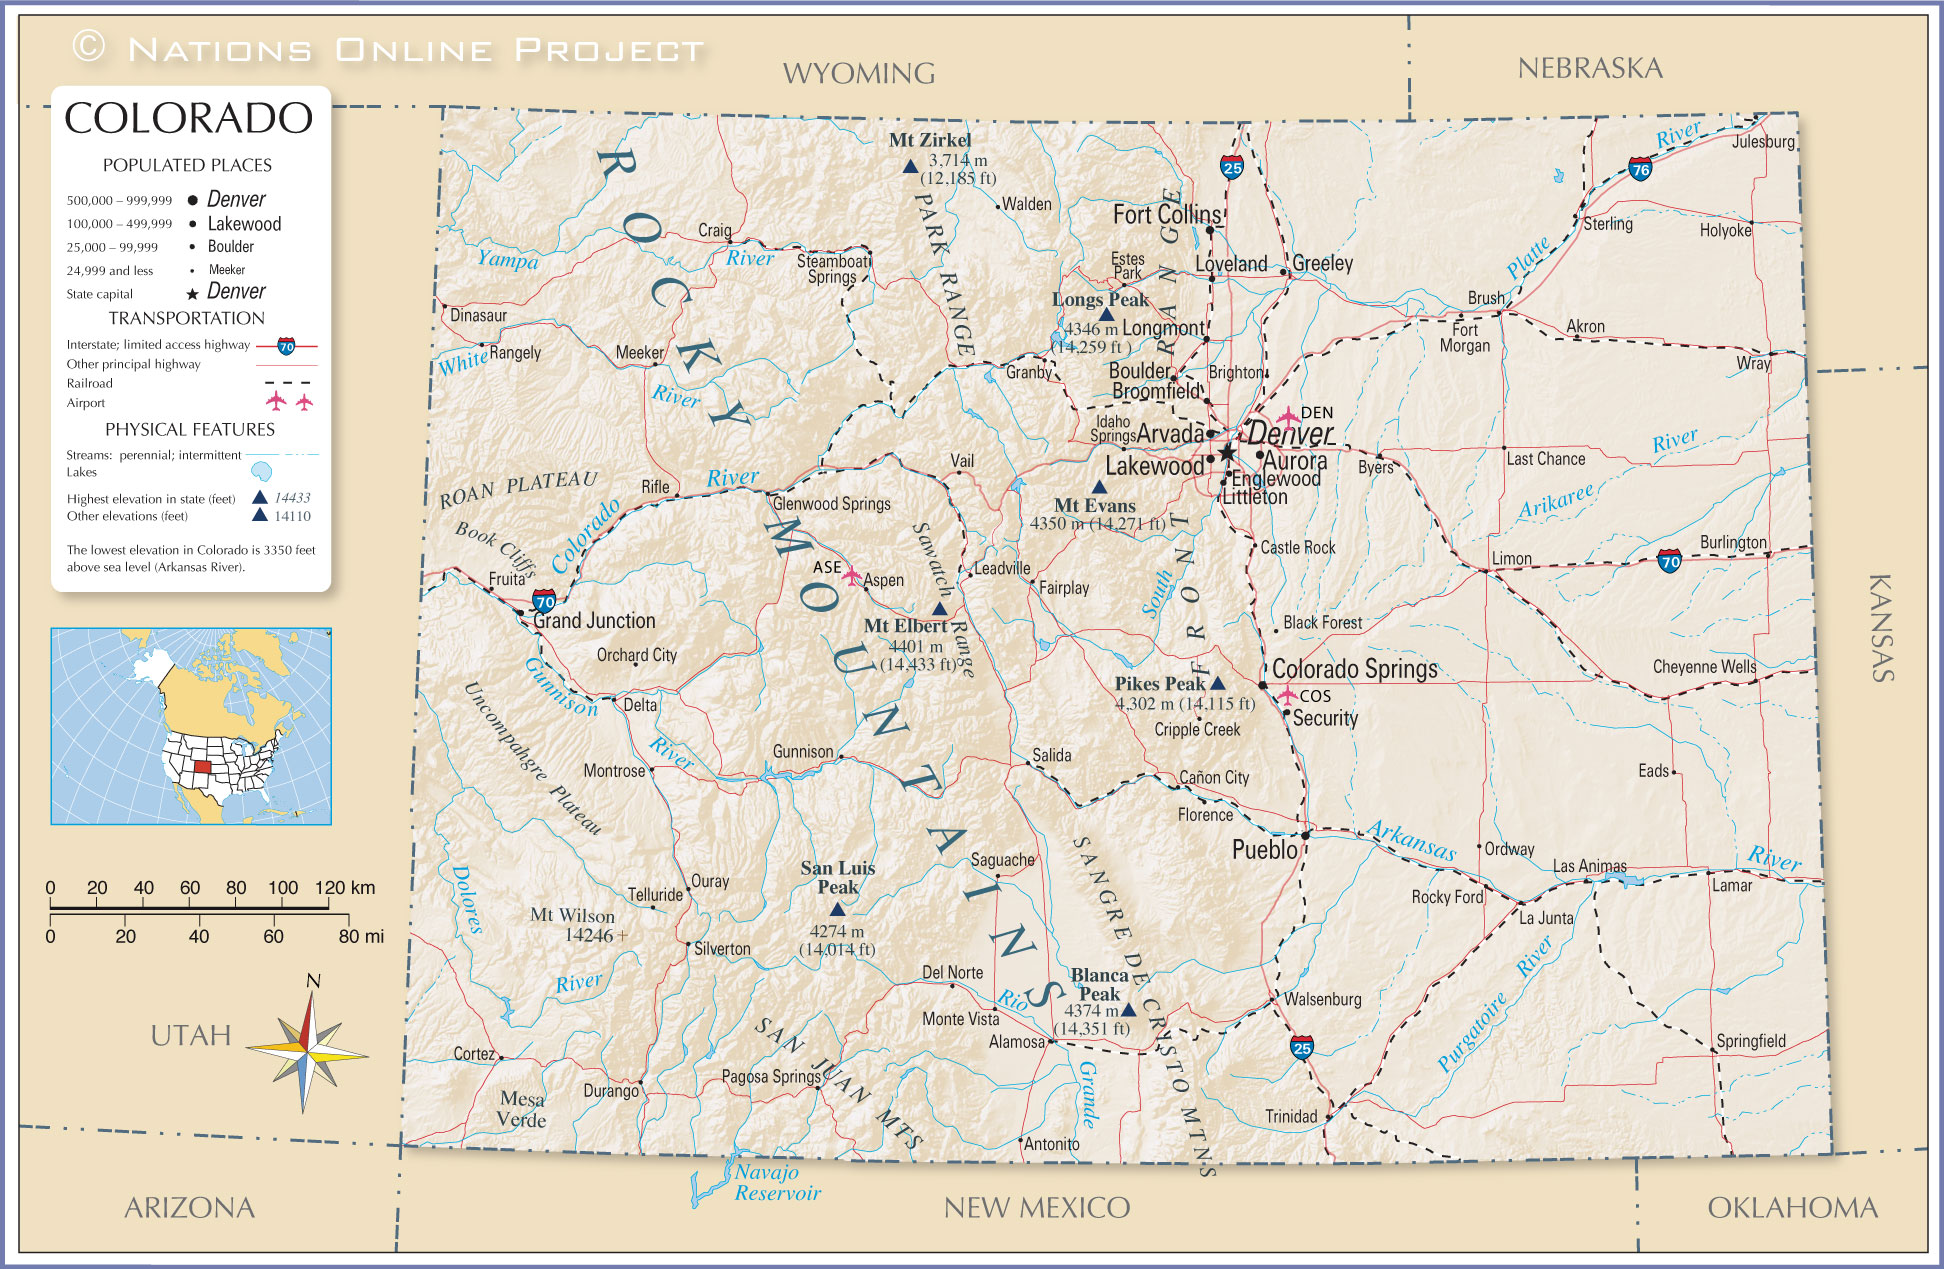 Southern Colorado Map Reference Maps of Colorado, USA   Nations Online Project Southern Colorado Map